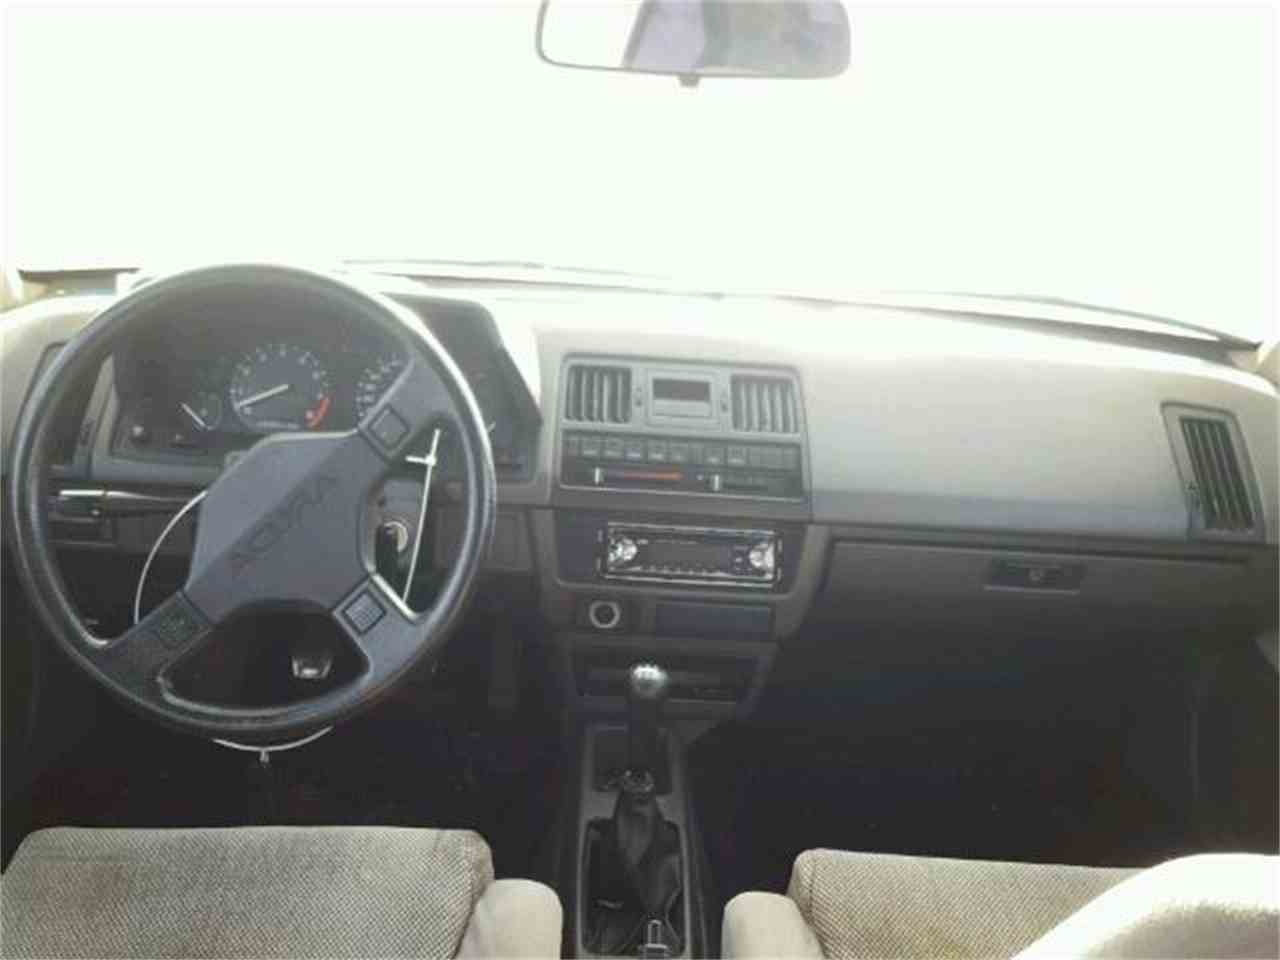 Acura integra acura integra 1987 pictures acura car photos and modification acura integra acura integra 1987 pictures 1987 acura integra for sale classiccars sciox Image collections